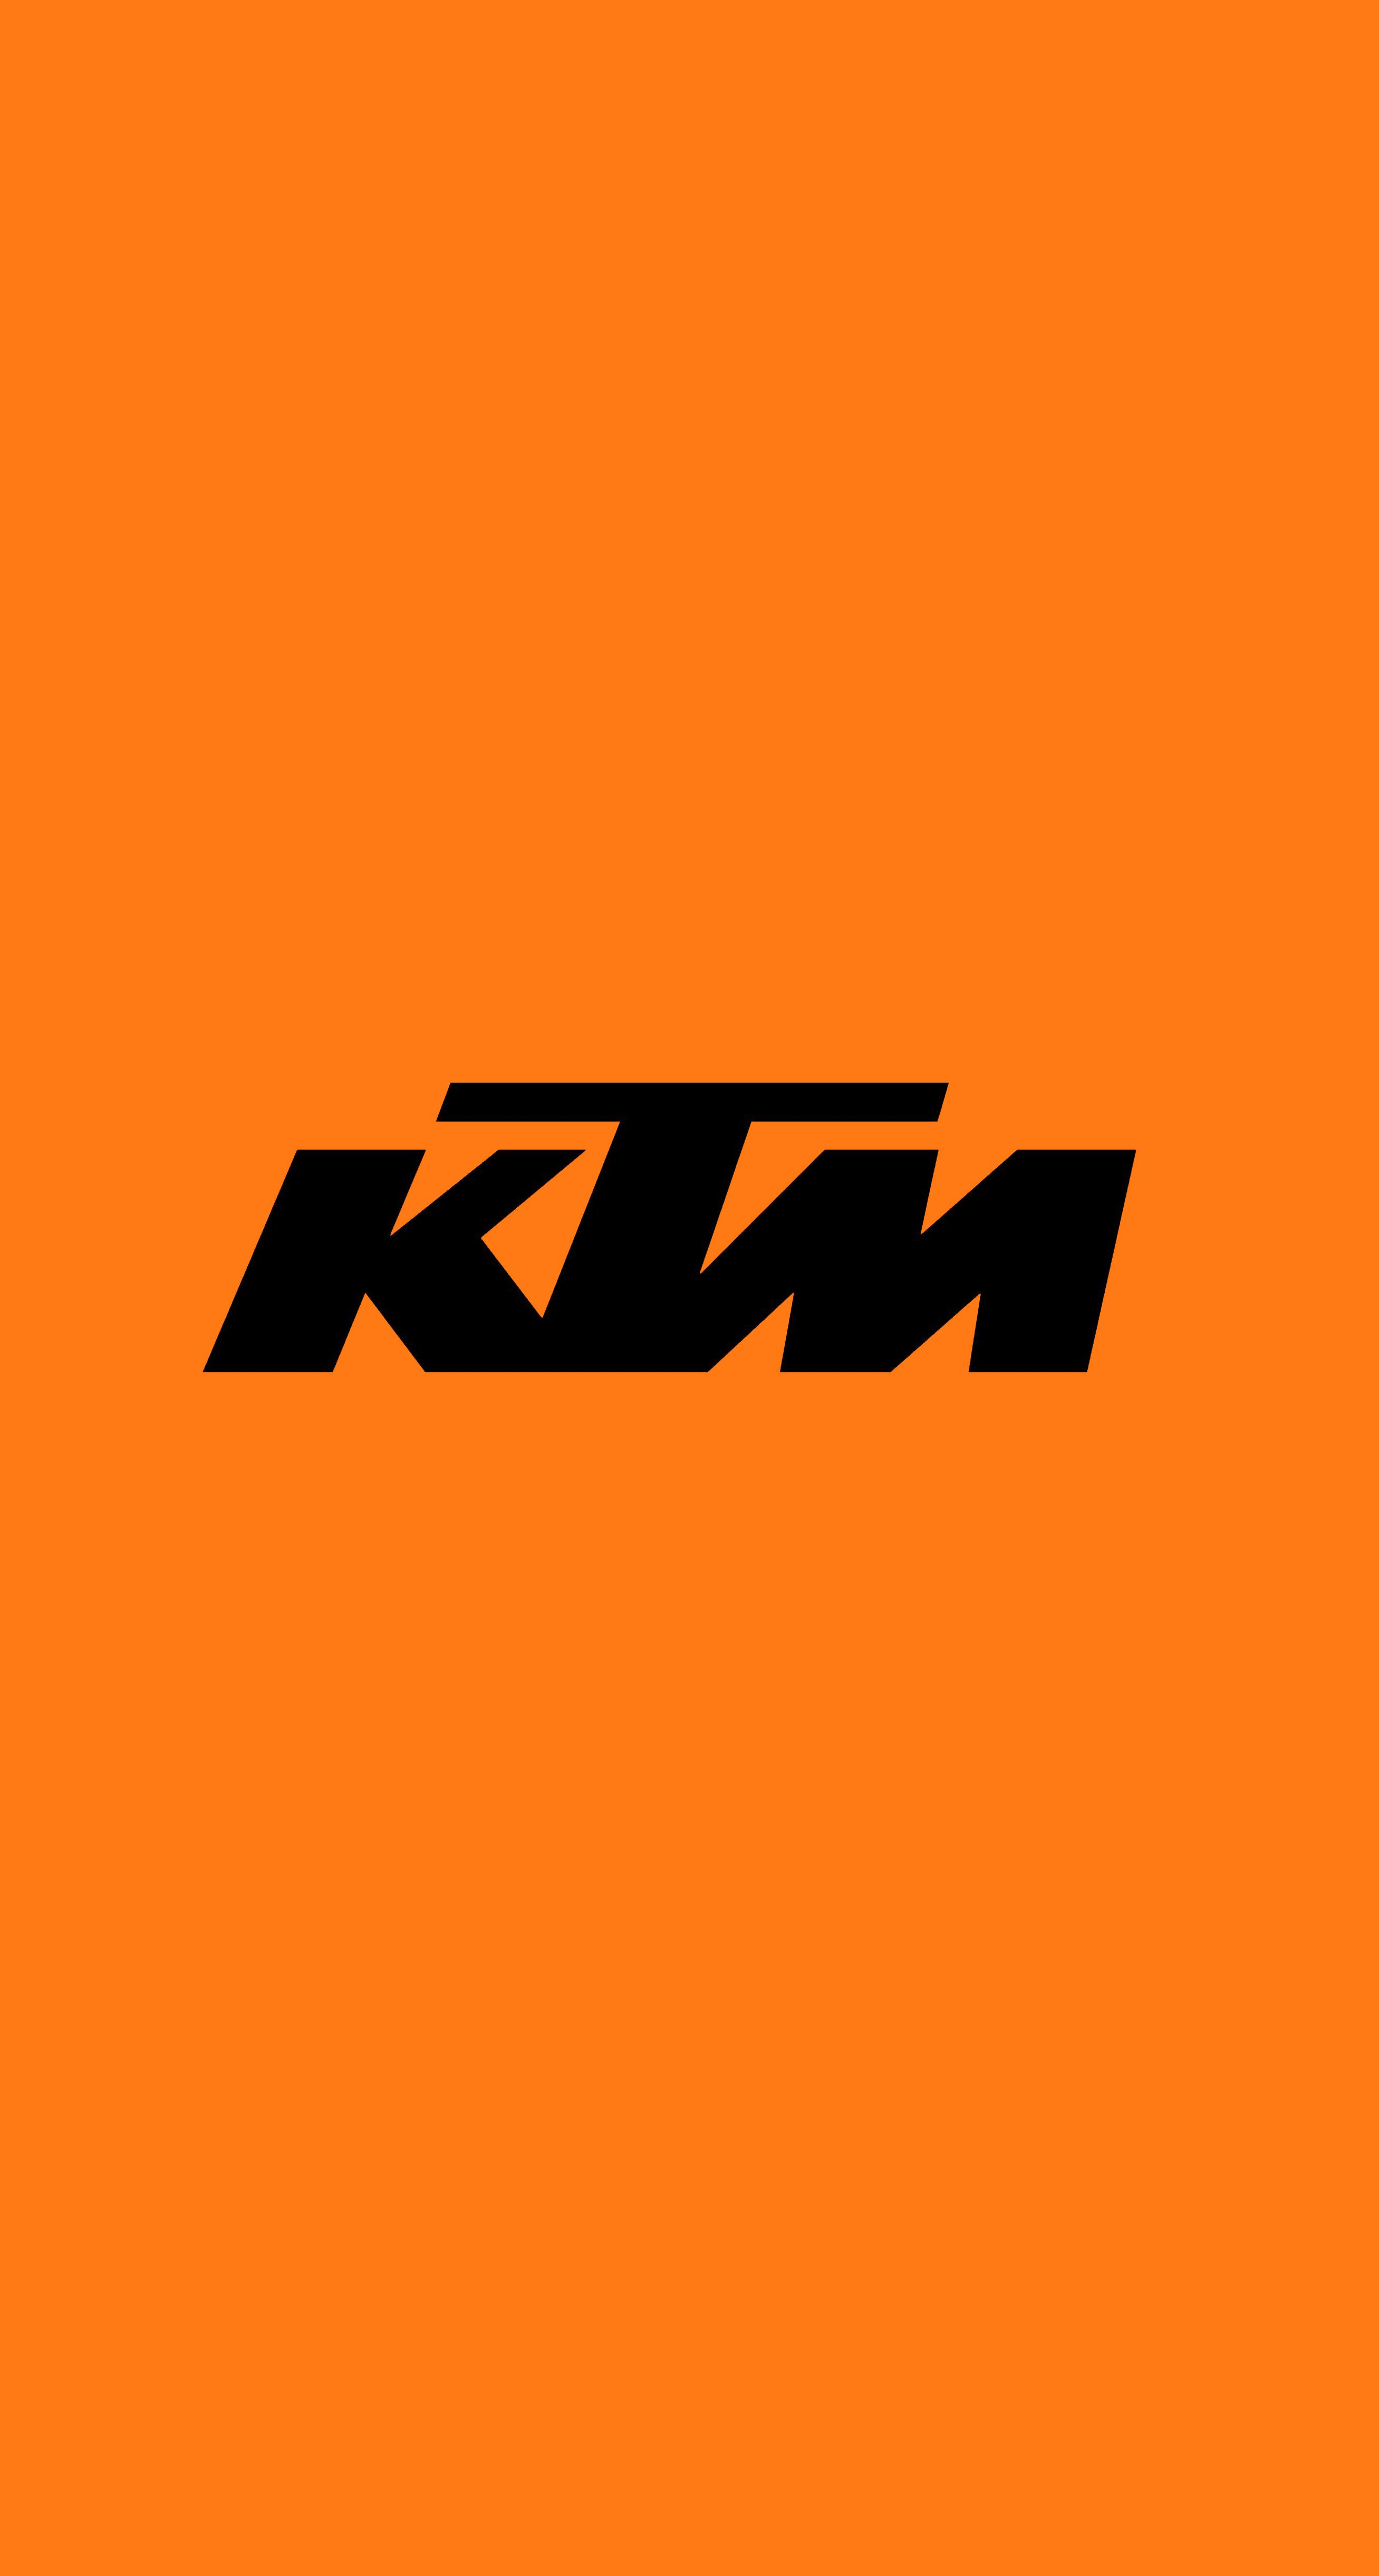 KTM Duke Windows 8.1 Theme and Backgrounds | Download Wallpaper ...